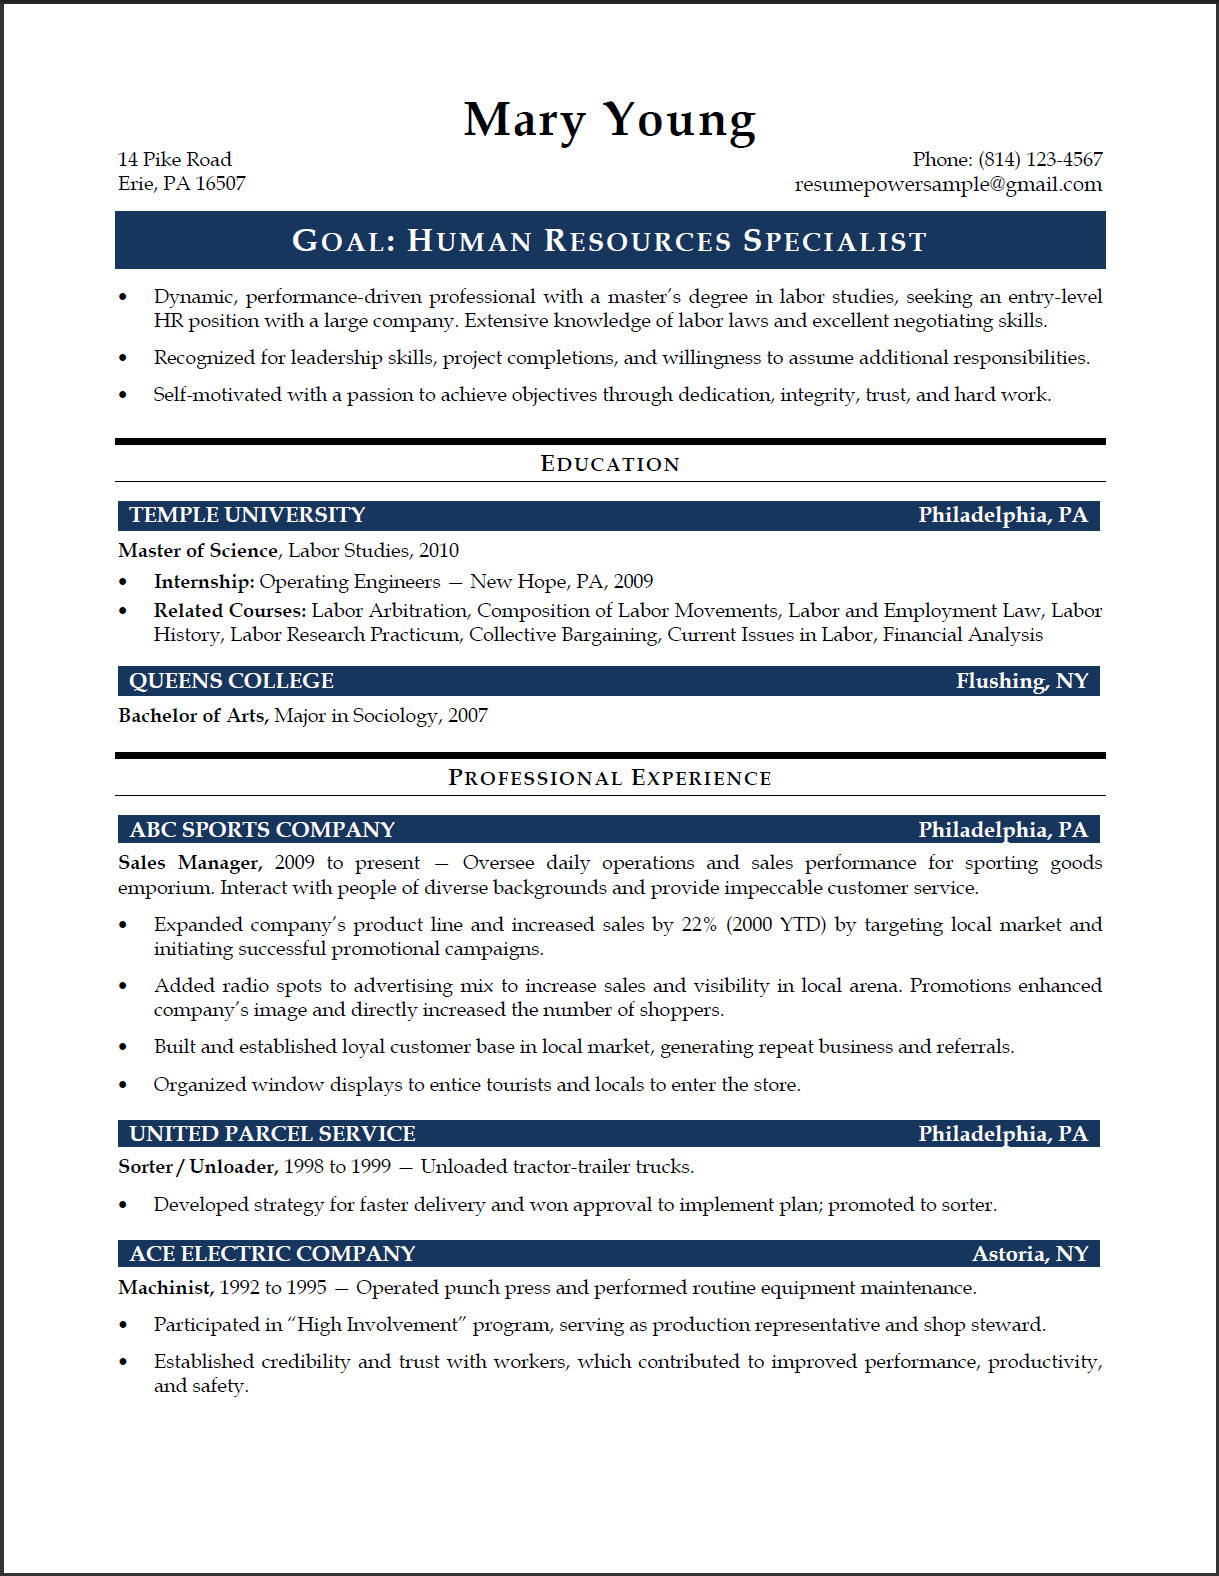 Hr Resume Examples. hr executive resume example page 2. vp e hr ...